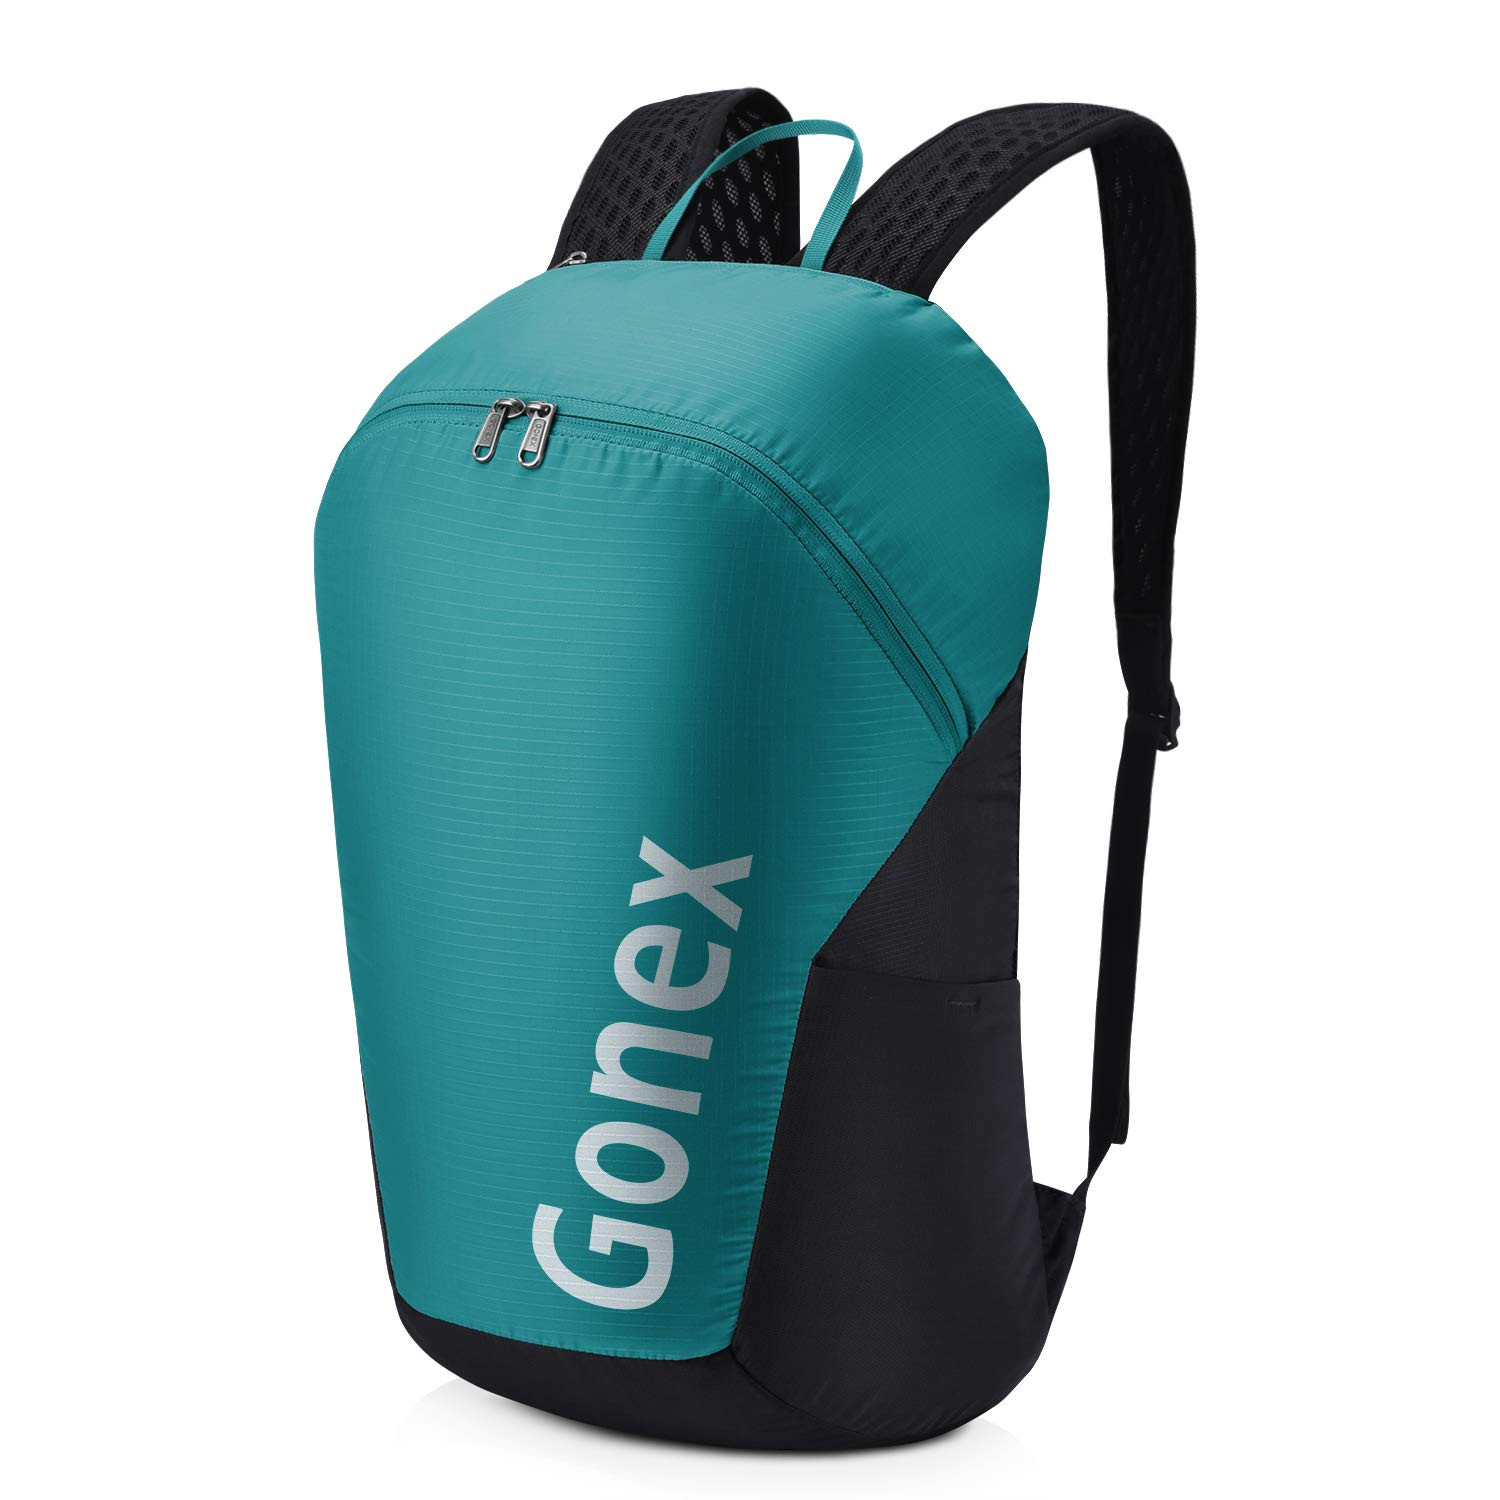 Gonex Lightweight Travel Daypack 32L Packable Handy Backpack for Outdoor Cycling Hiking Camping/Men/Women